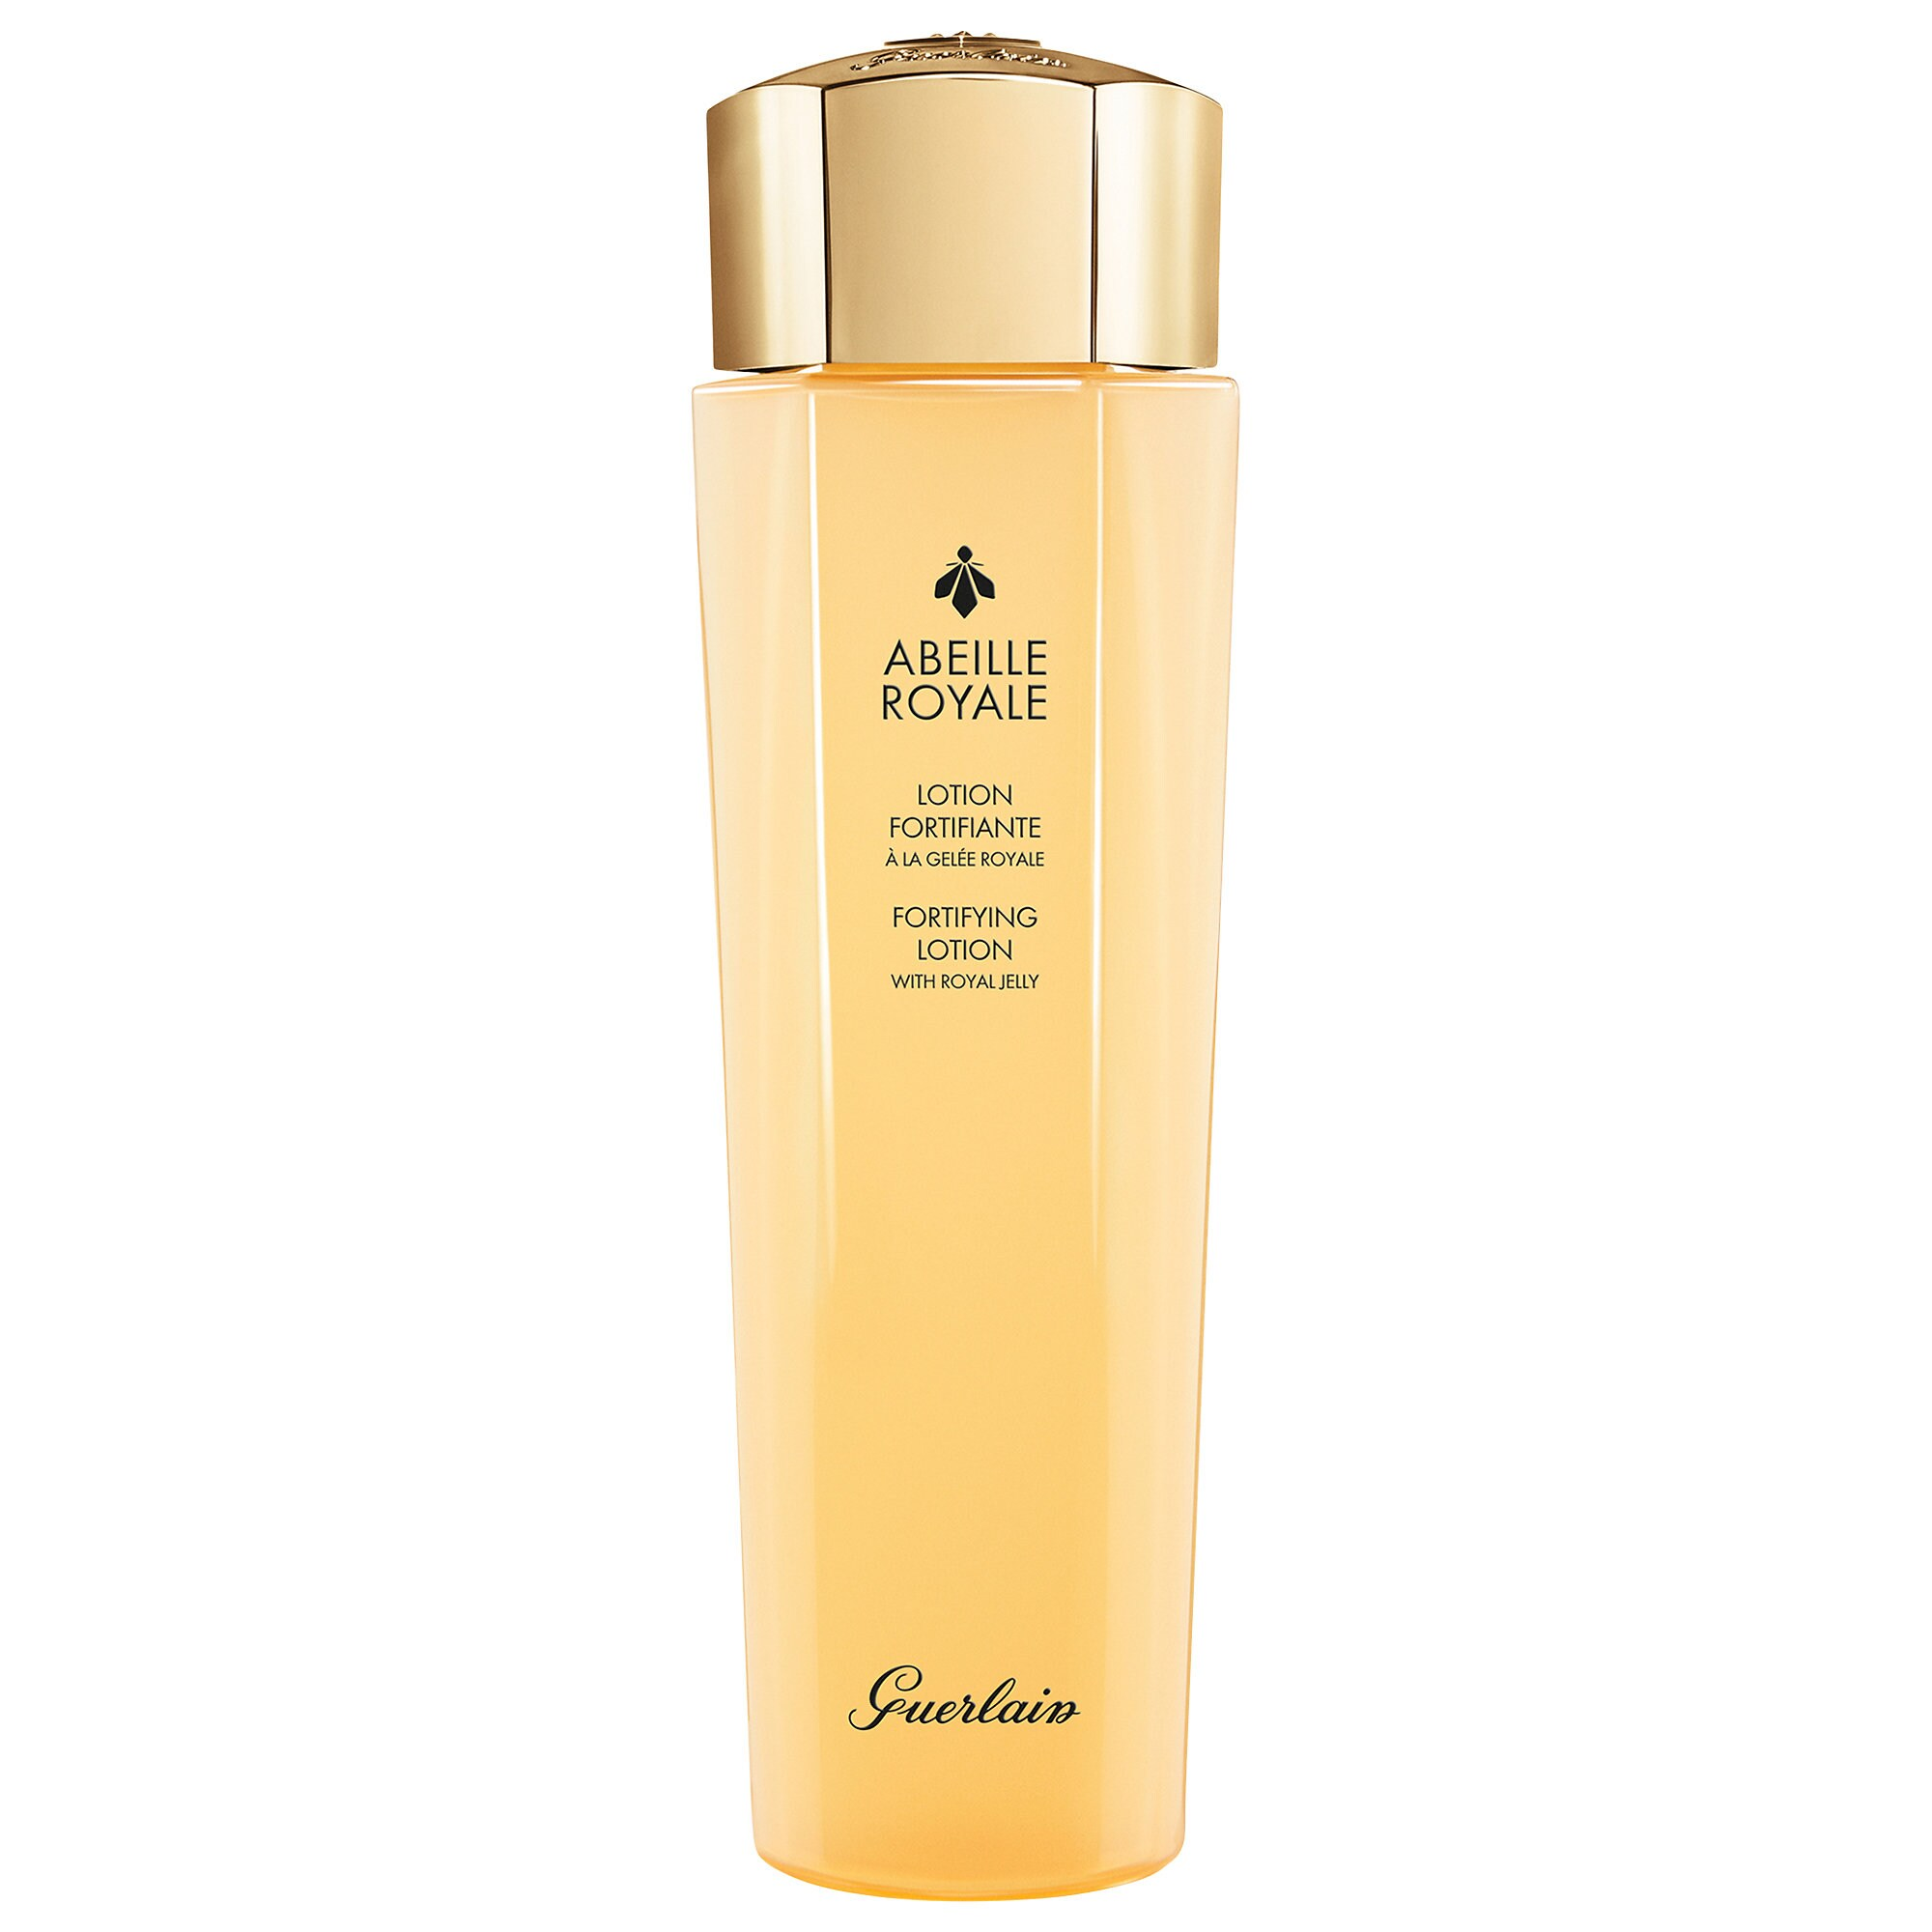 Guerlain - Abeille Royale Anti-Aging Fortifying Lotion Toner